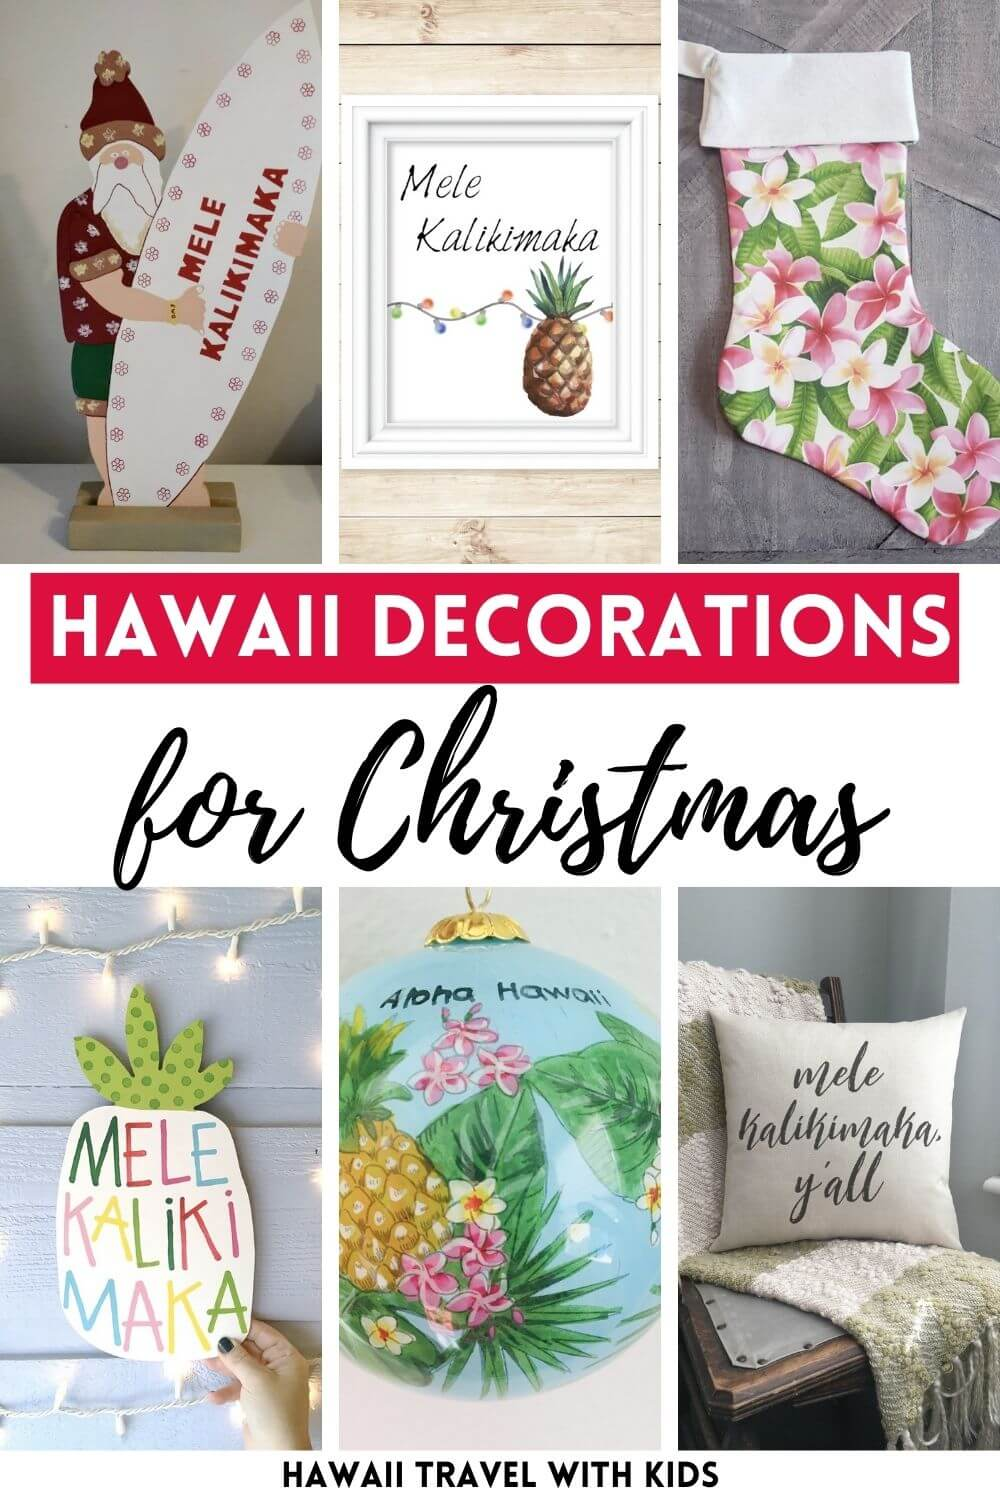 Add some Hawaiian Christmas decorations to your home this holiday season with these top Hawaii Christmas decorations ideas from top Hawaii blog Hawaii Travel with Kids